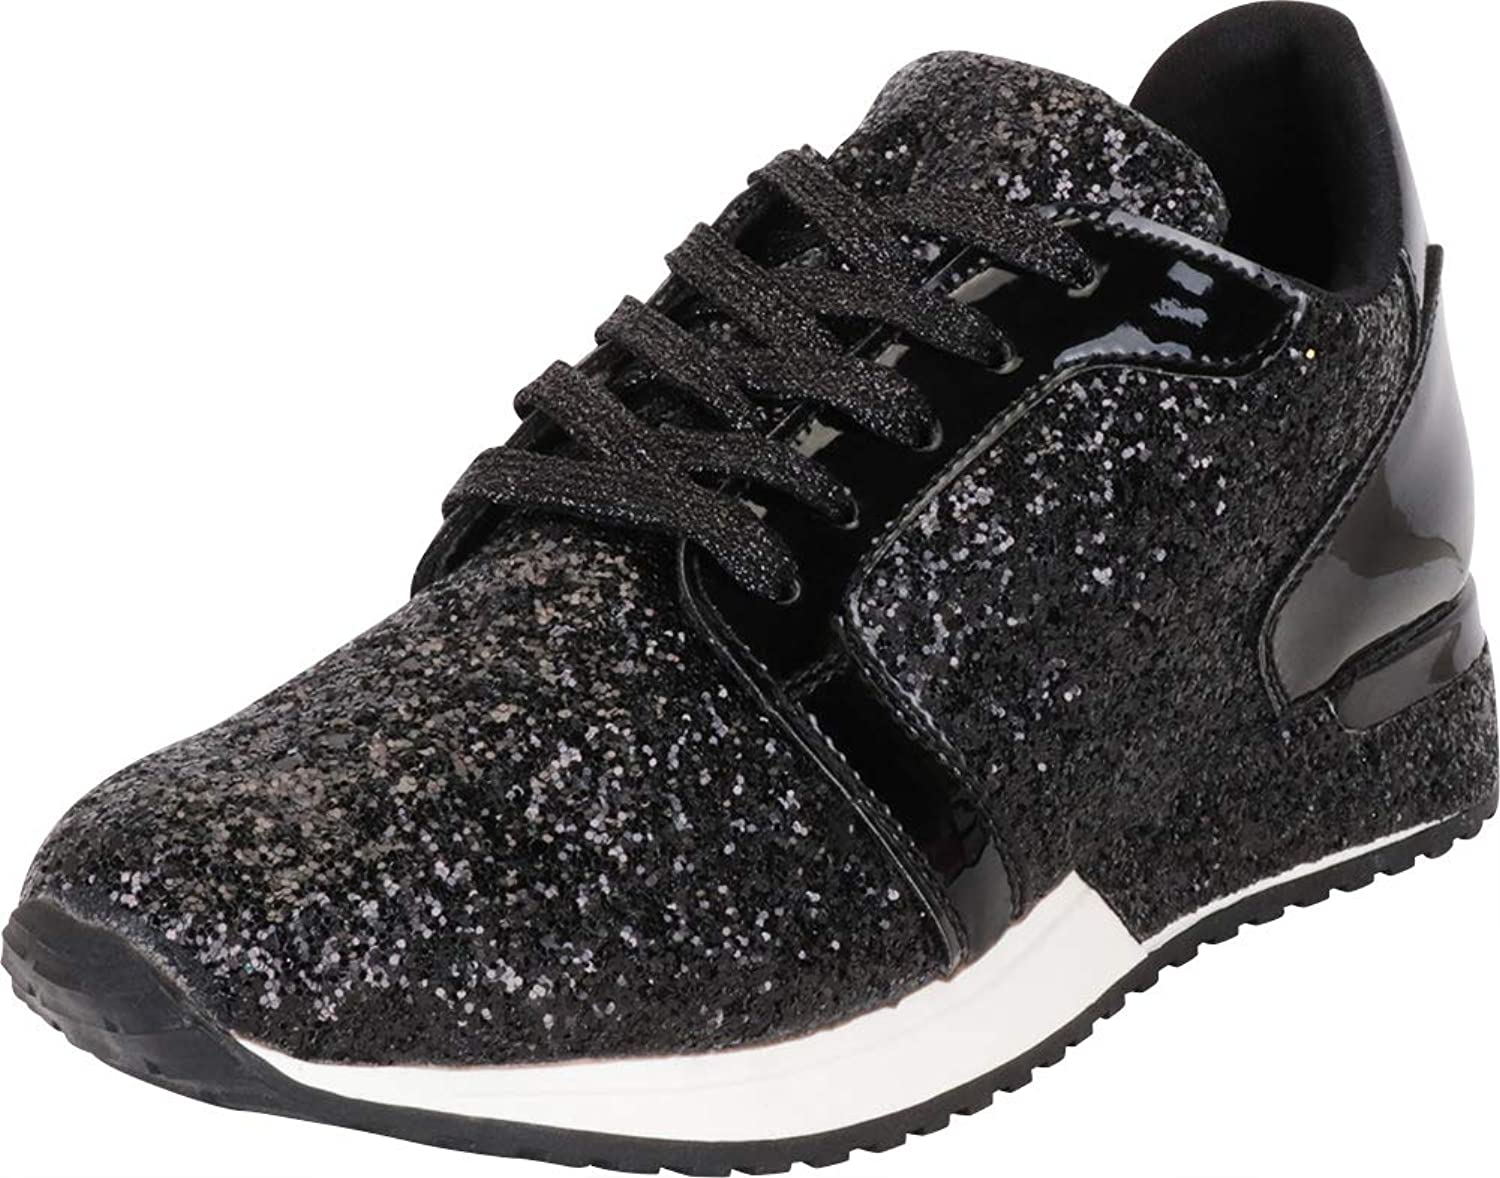 Cambridge Select Women's Low Top Glitter Encrusted Lace-Up Casual Sport Fashion Sneaker